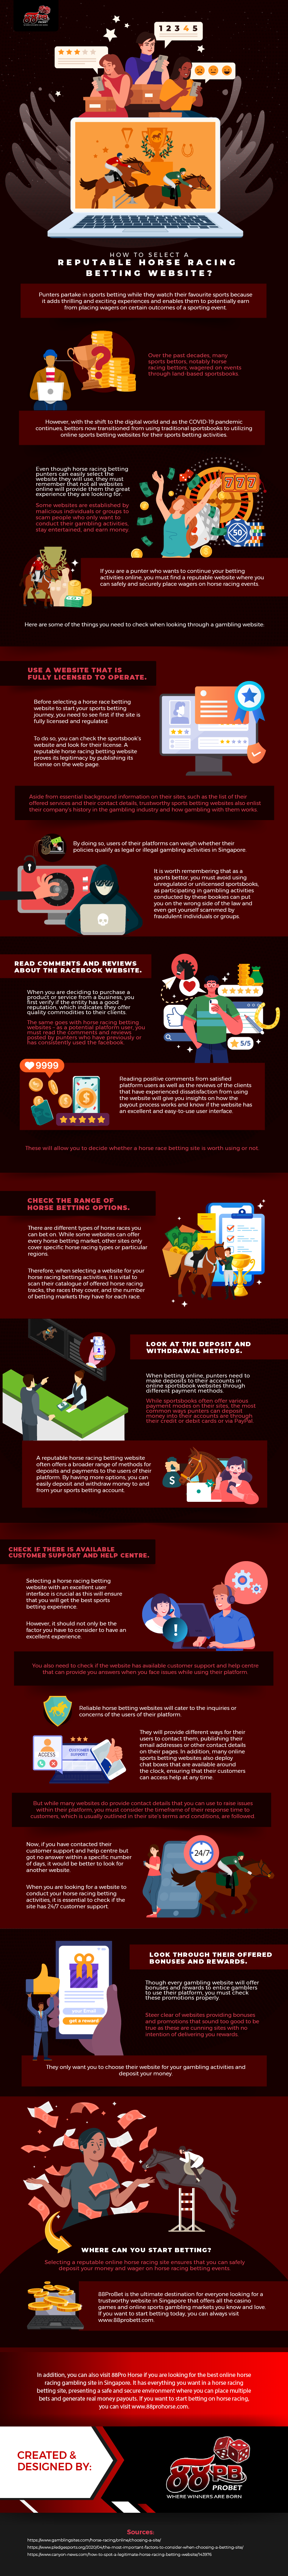 How-To-Select-a-Reputable-Horse-Racing-Betting-Website-Infographic